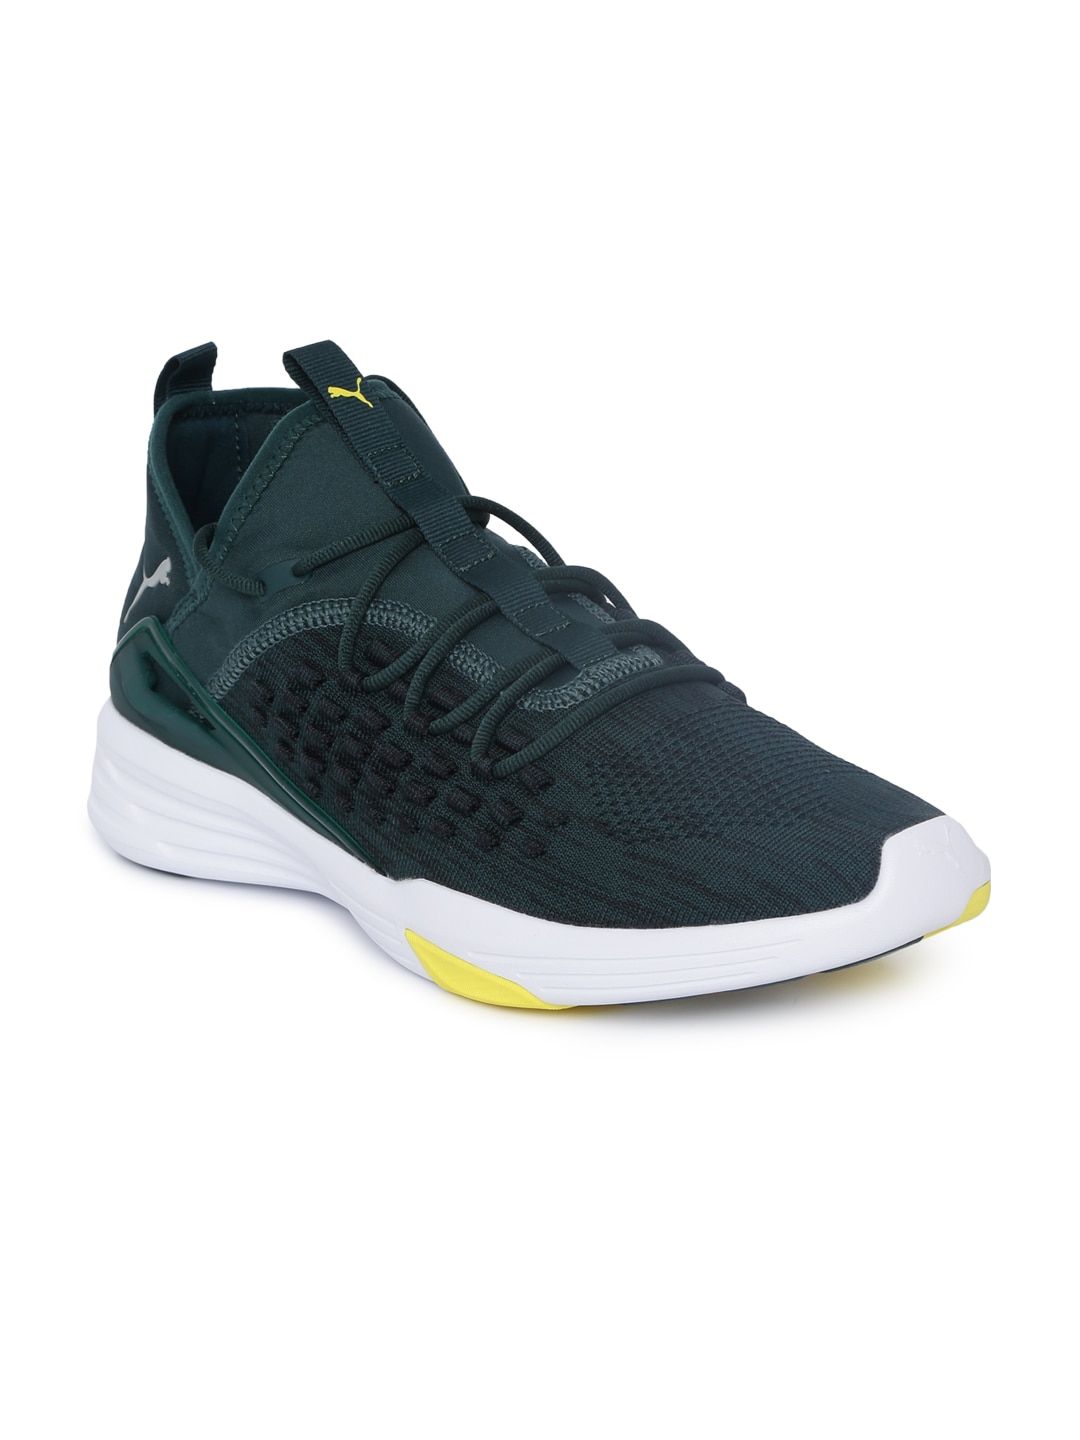 e8f6daae Puma Men Green Mantra Training Shoes